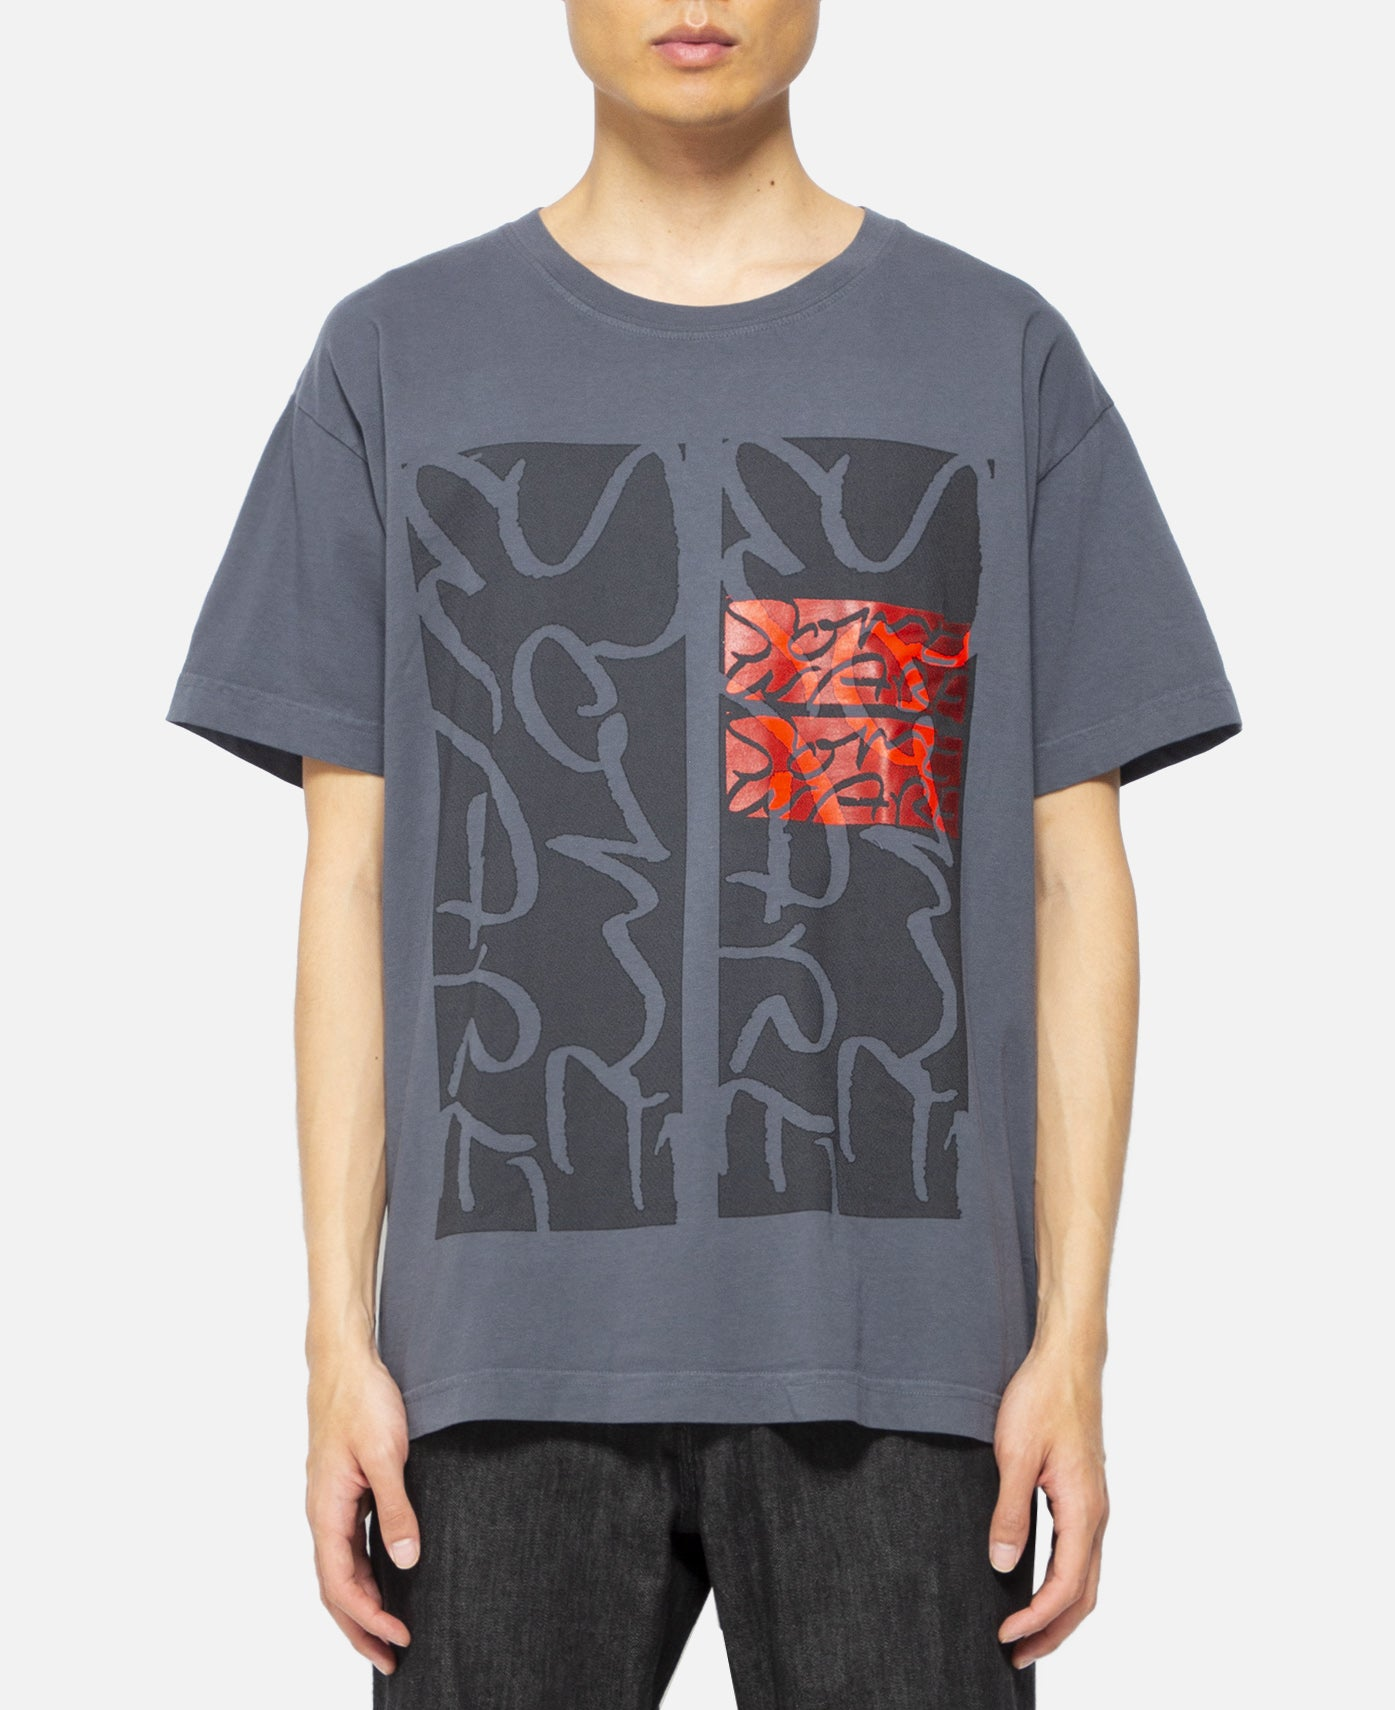 Giant Logo S/S T-SHirt (Charcoal)